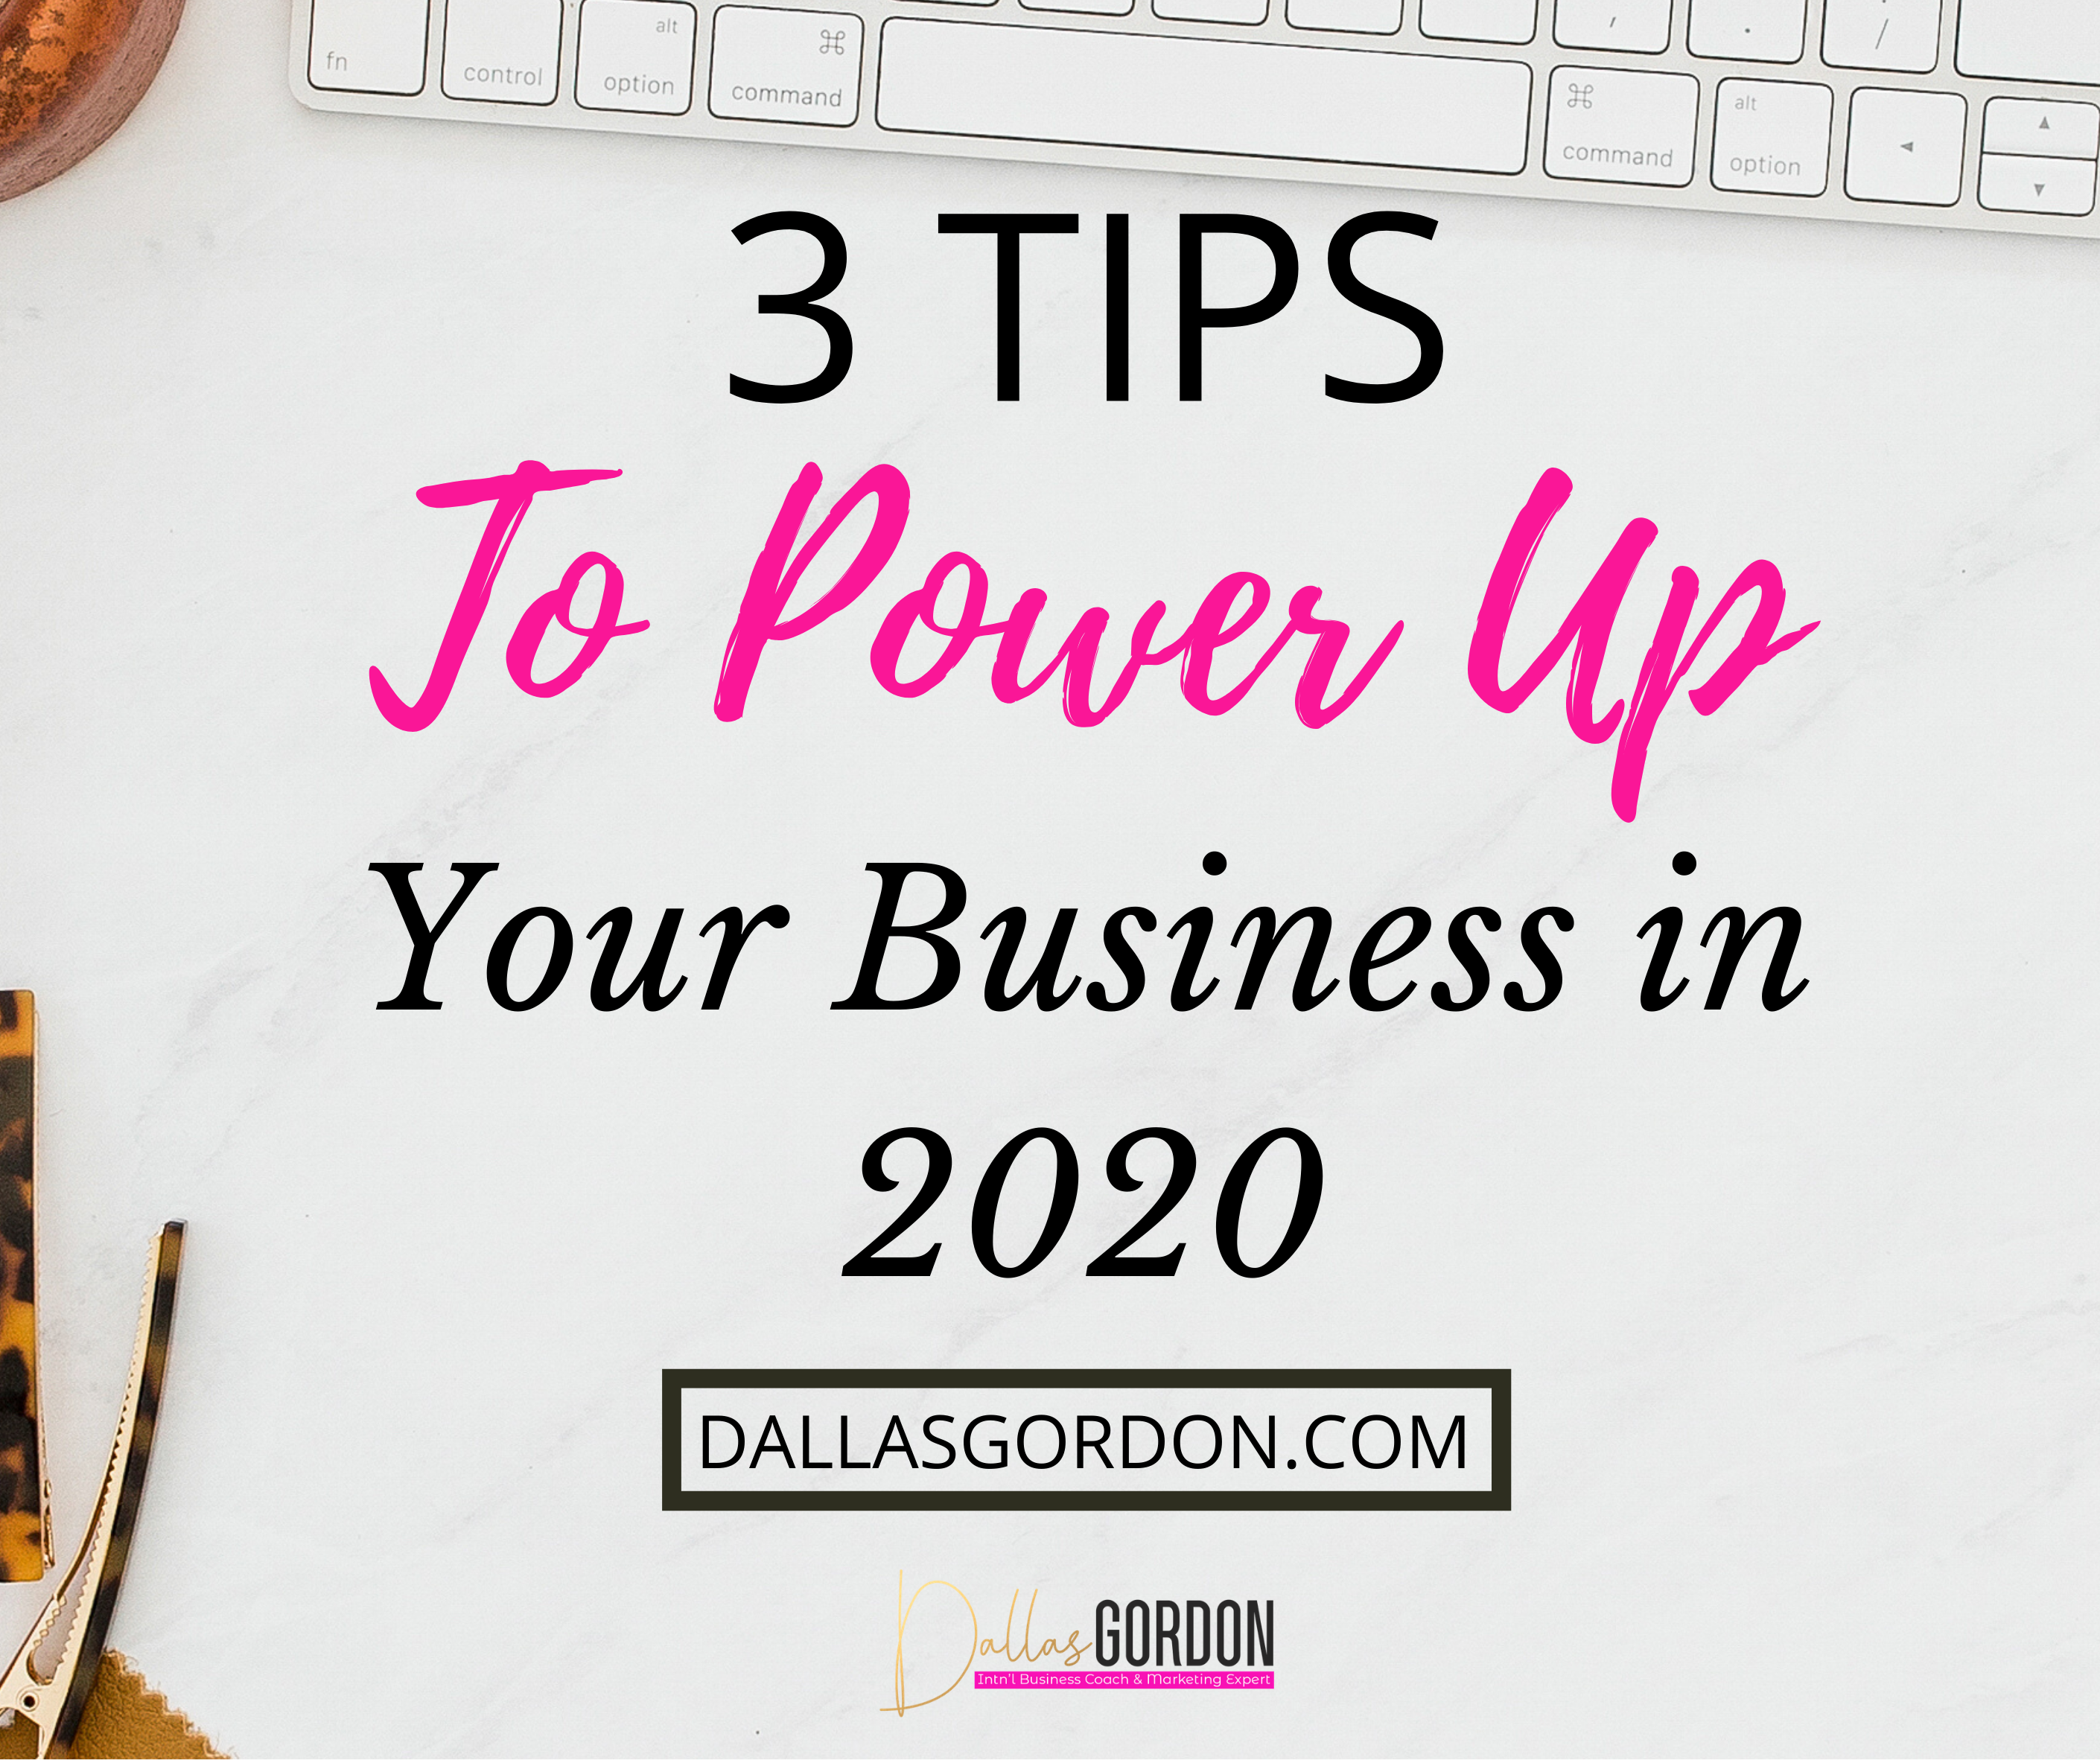 3 Tips to Power Up Your Business in 2020